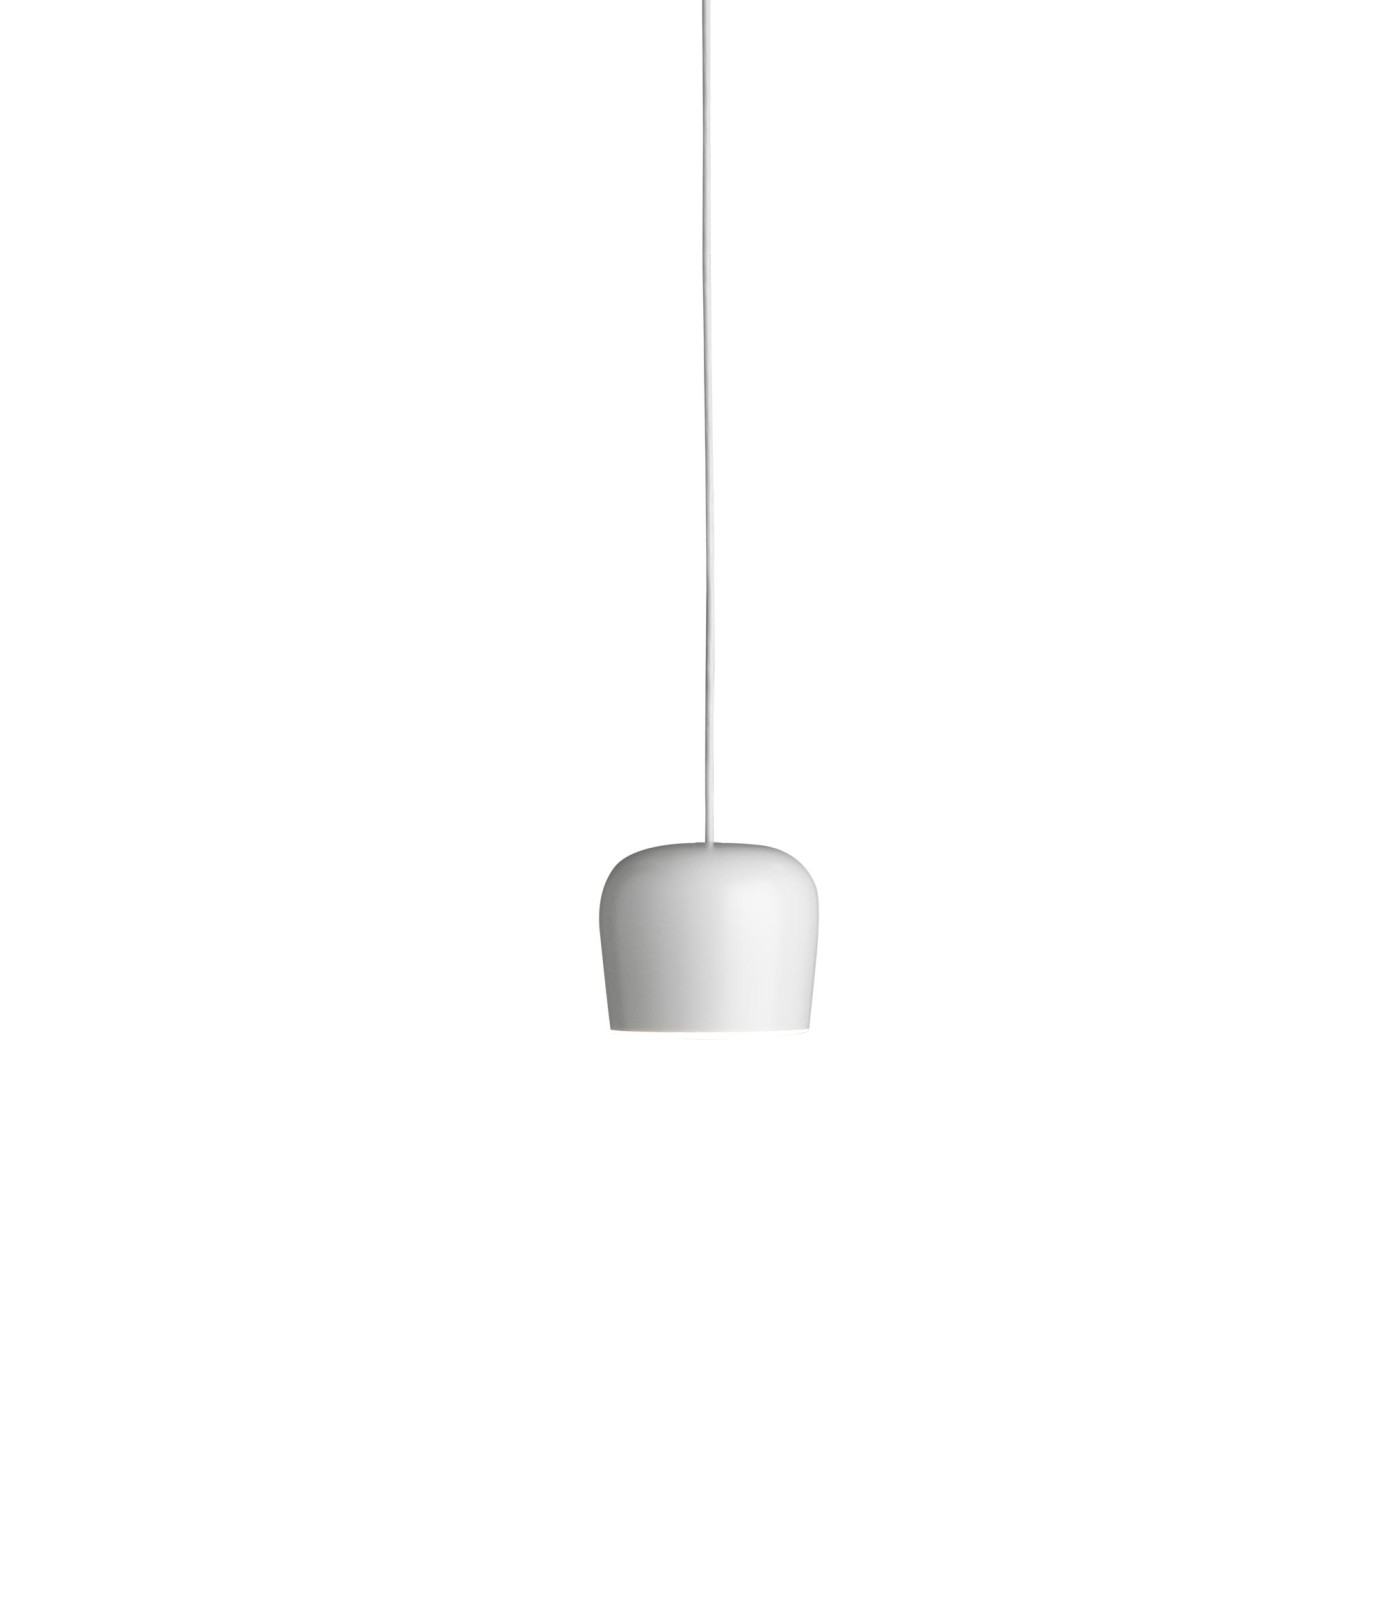 Aim Small Fix Pendant Light White, No